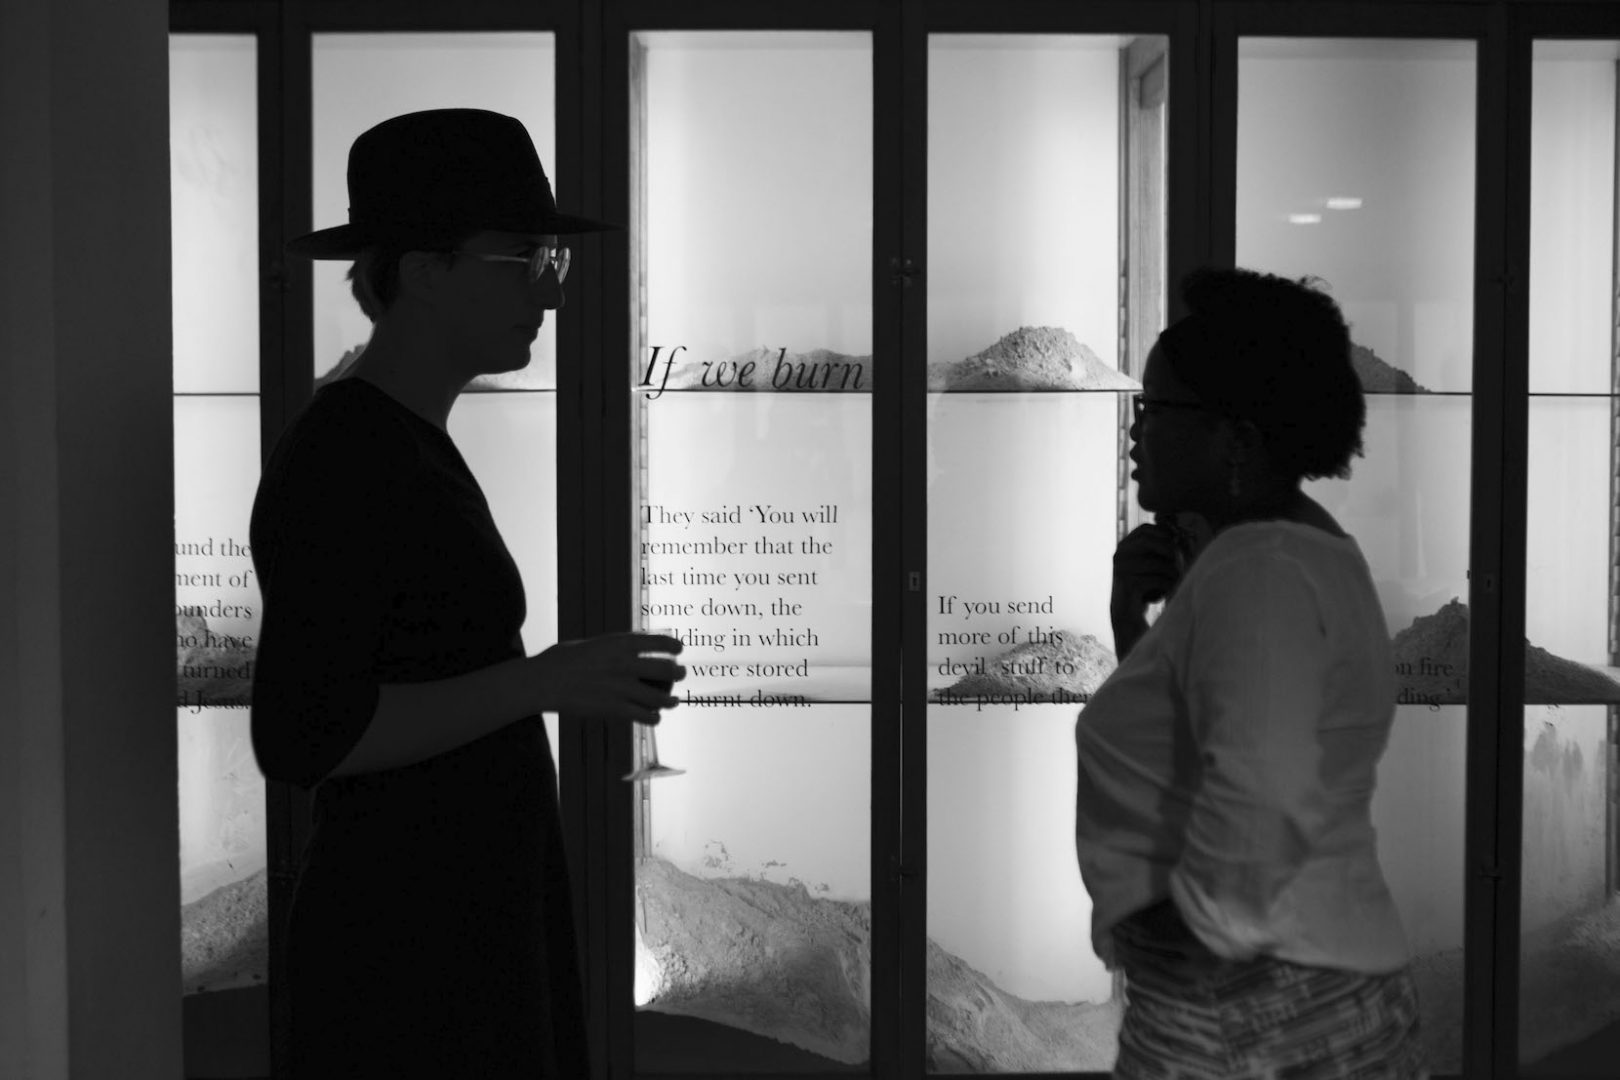 """The Wits Anthropology Department reopened its Museum collection with   """"If we burn there is ash"""". An exhibition by Talya Lubinsky with contributing artists Meghan Judge, Tshegofatso Mabaso and Thandiwe Msebenzi and performances by Lebohang Masango and Healer Oran. Wits University, Johannesburg. PICTURE LAUREN MULLIGAN"""